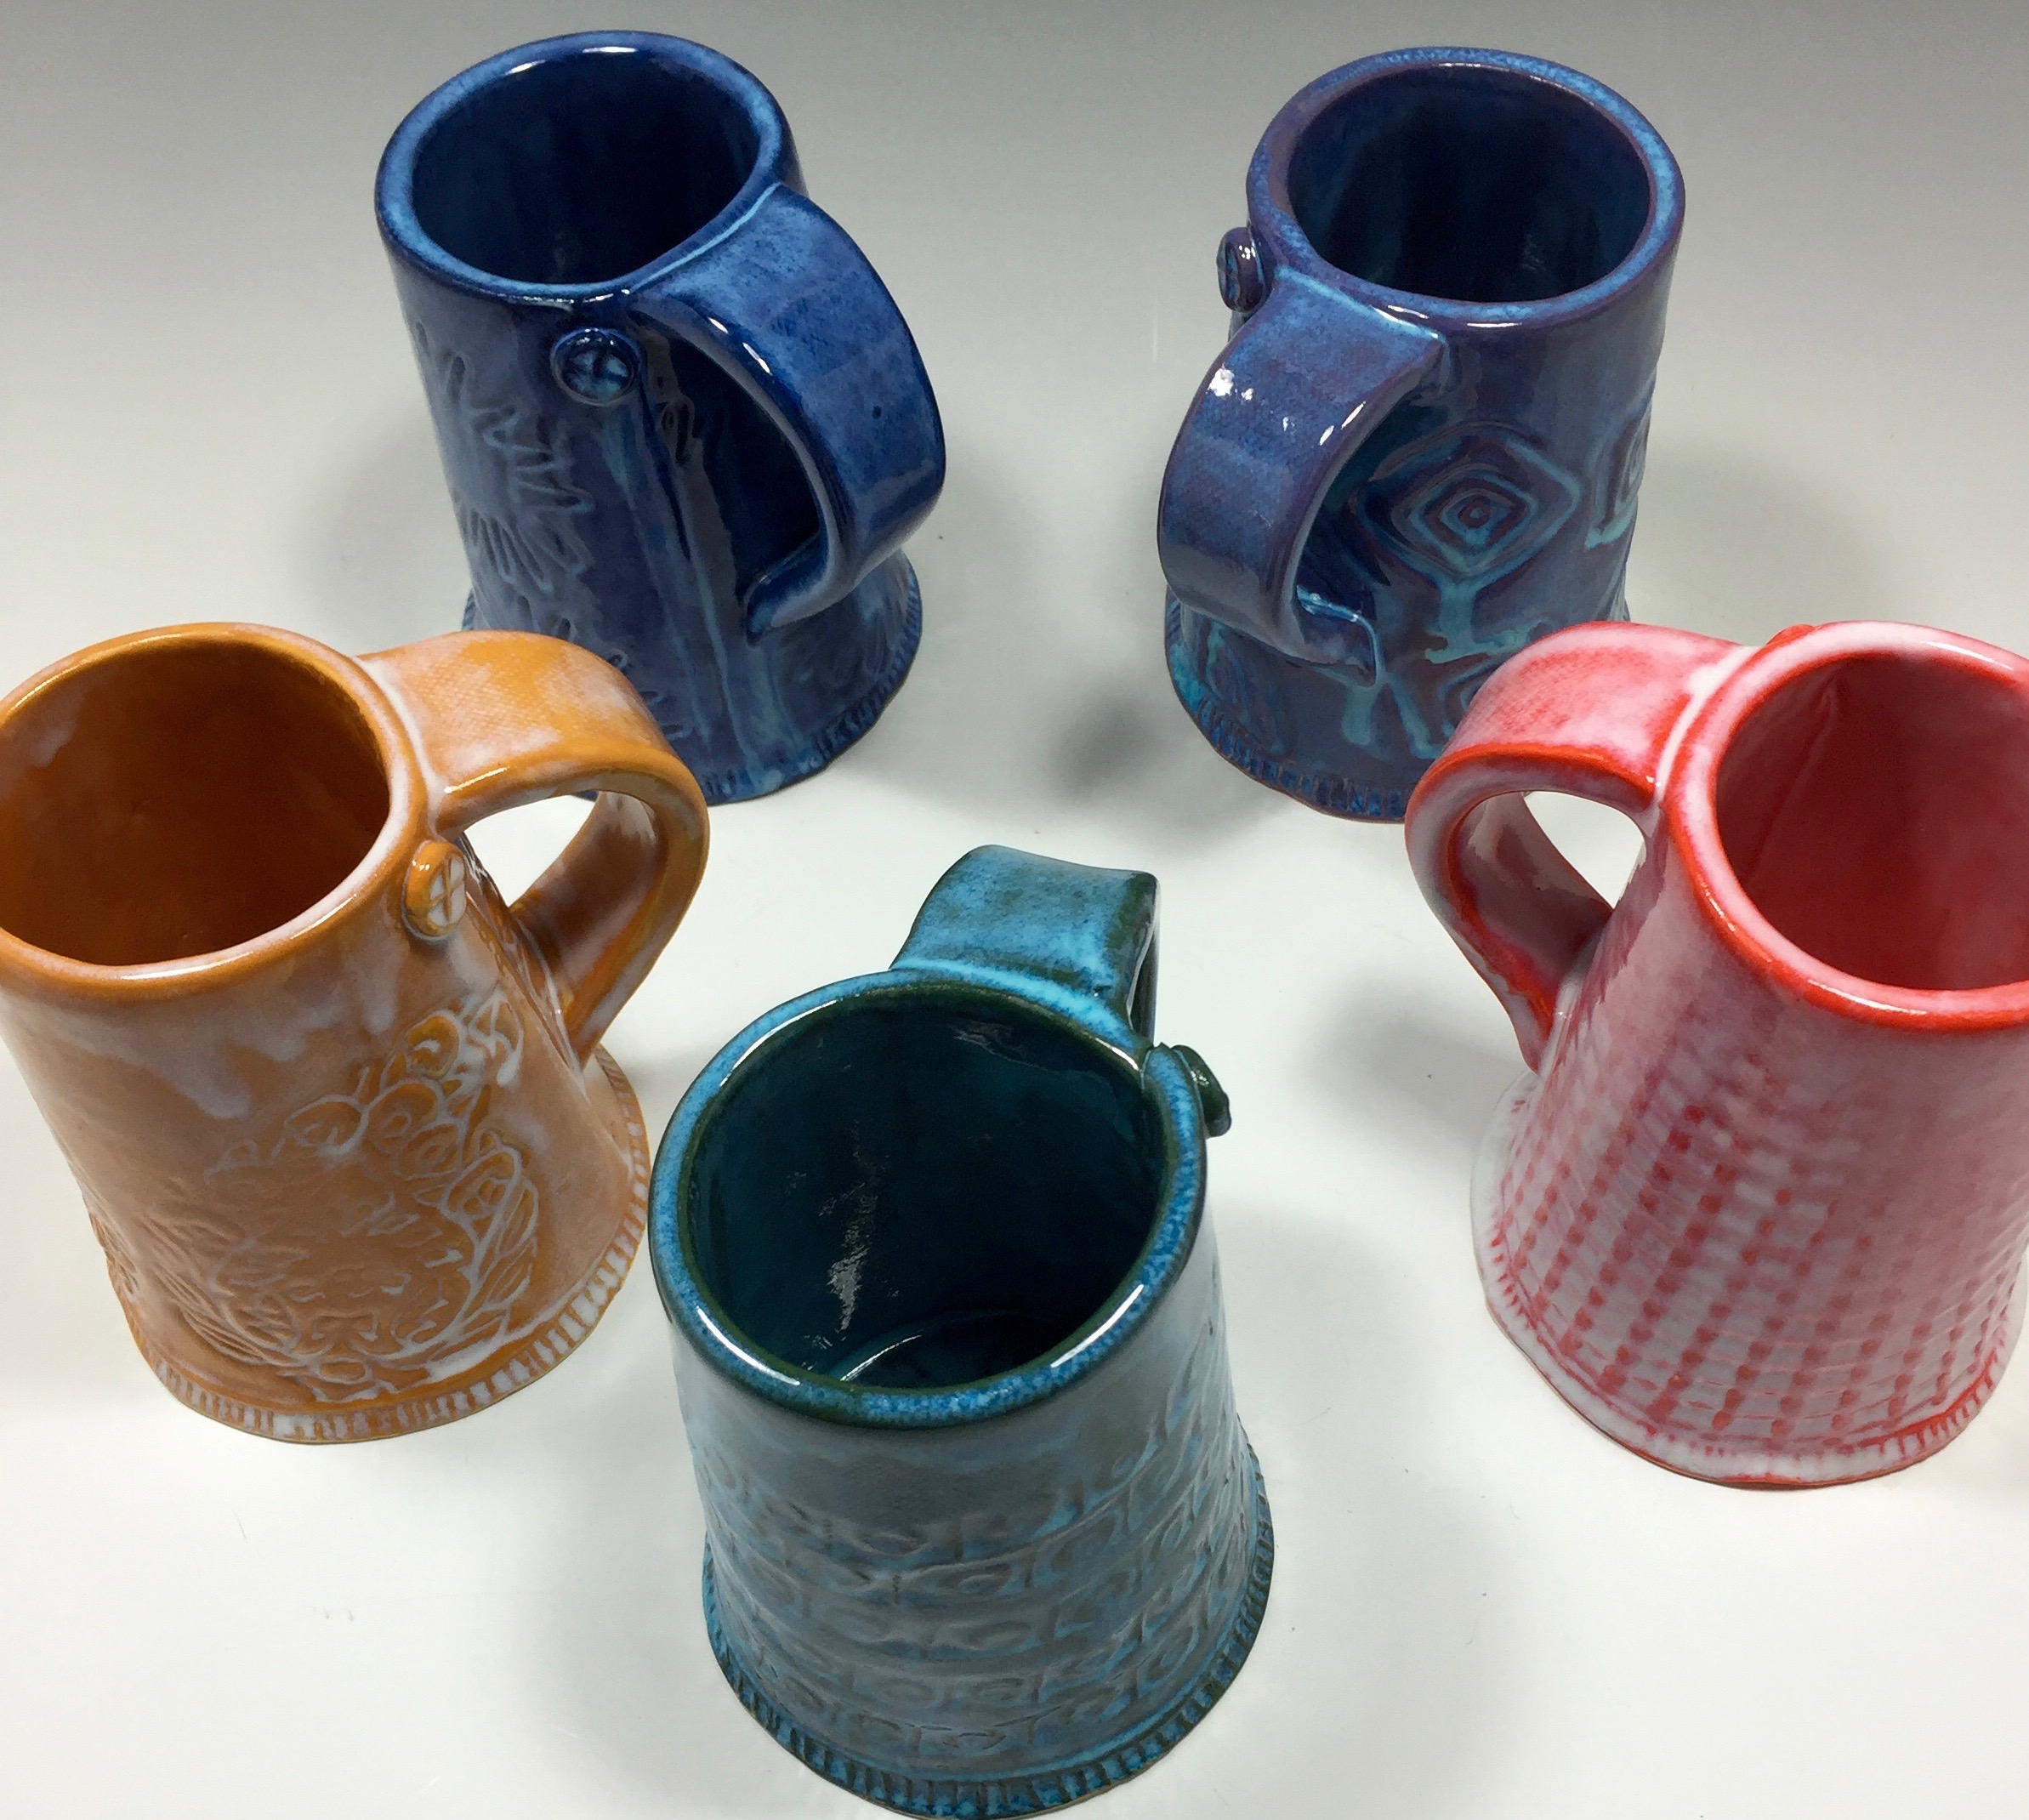 I've revised the shape of my mugs. These are narrow at the top and wide at the bottom. I still feature a seam line and button. The narrow top will help hold the temperature of a hot drink.